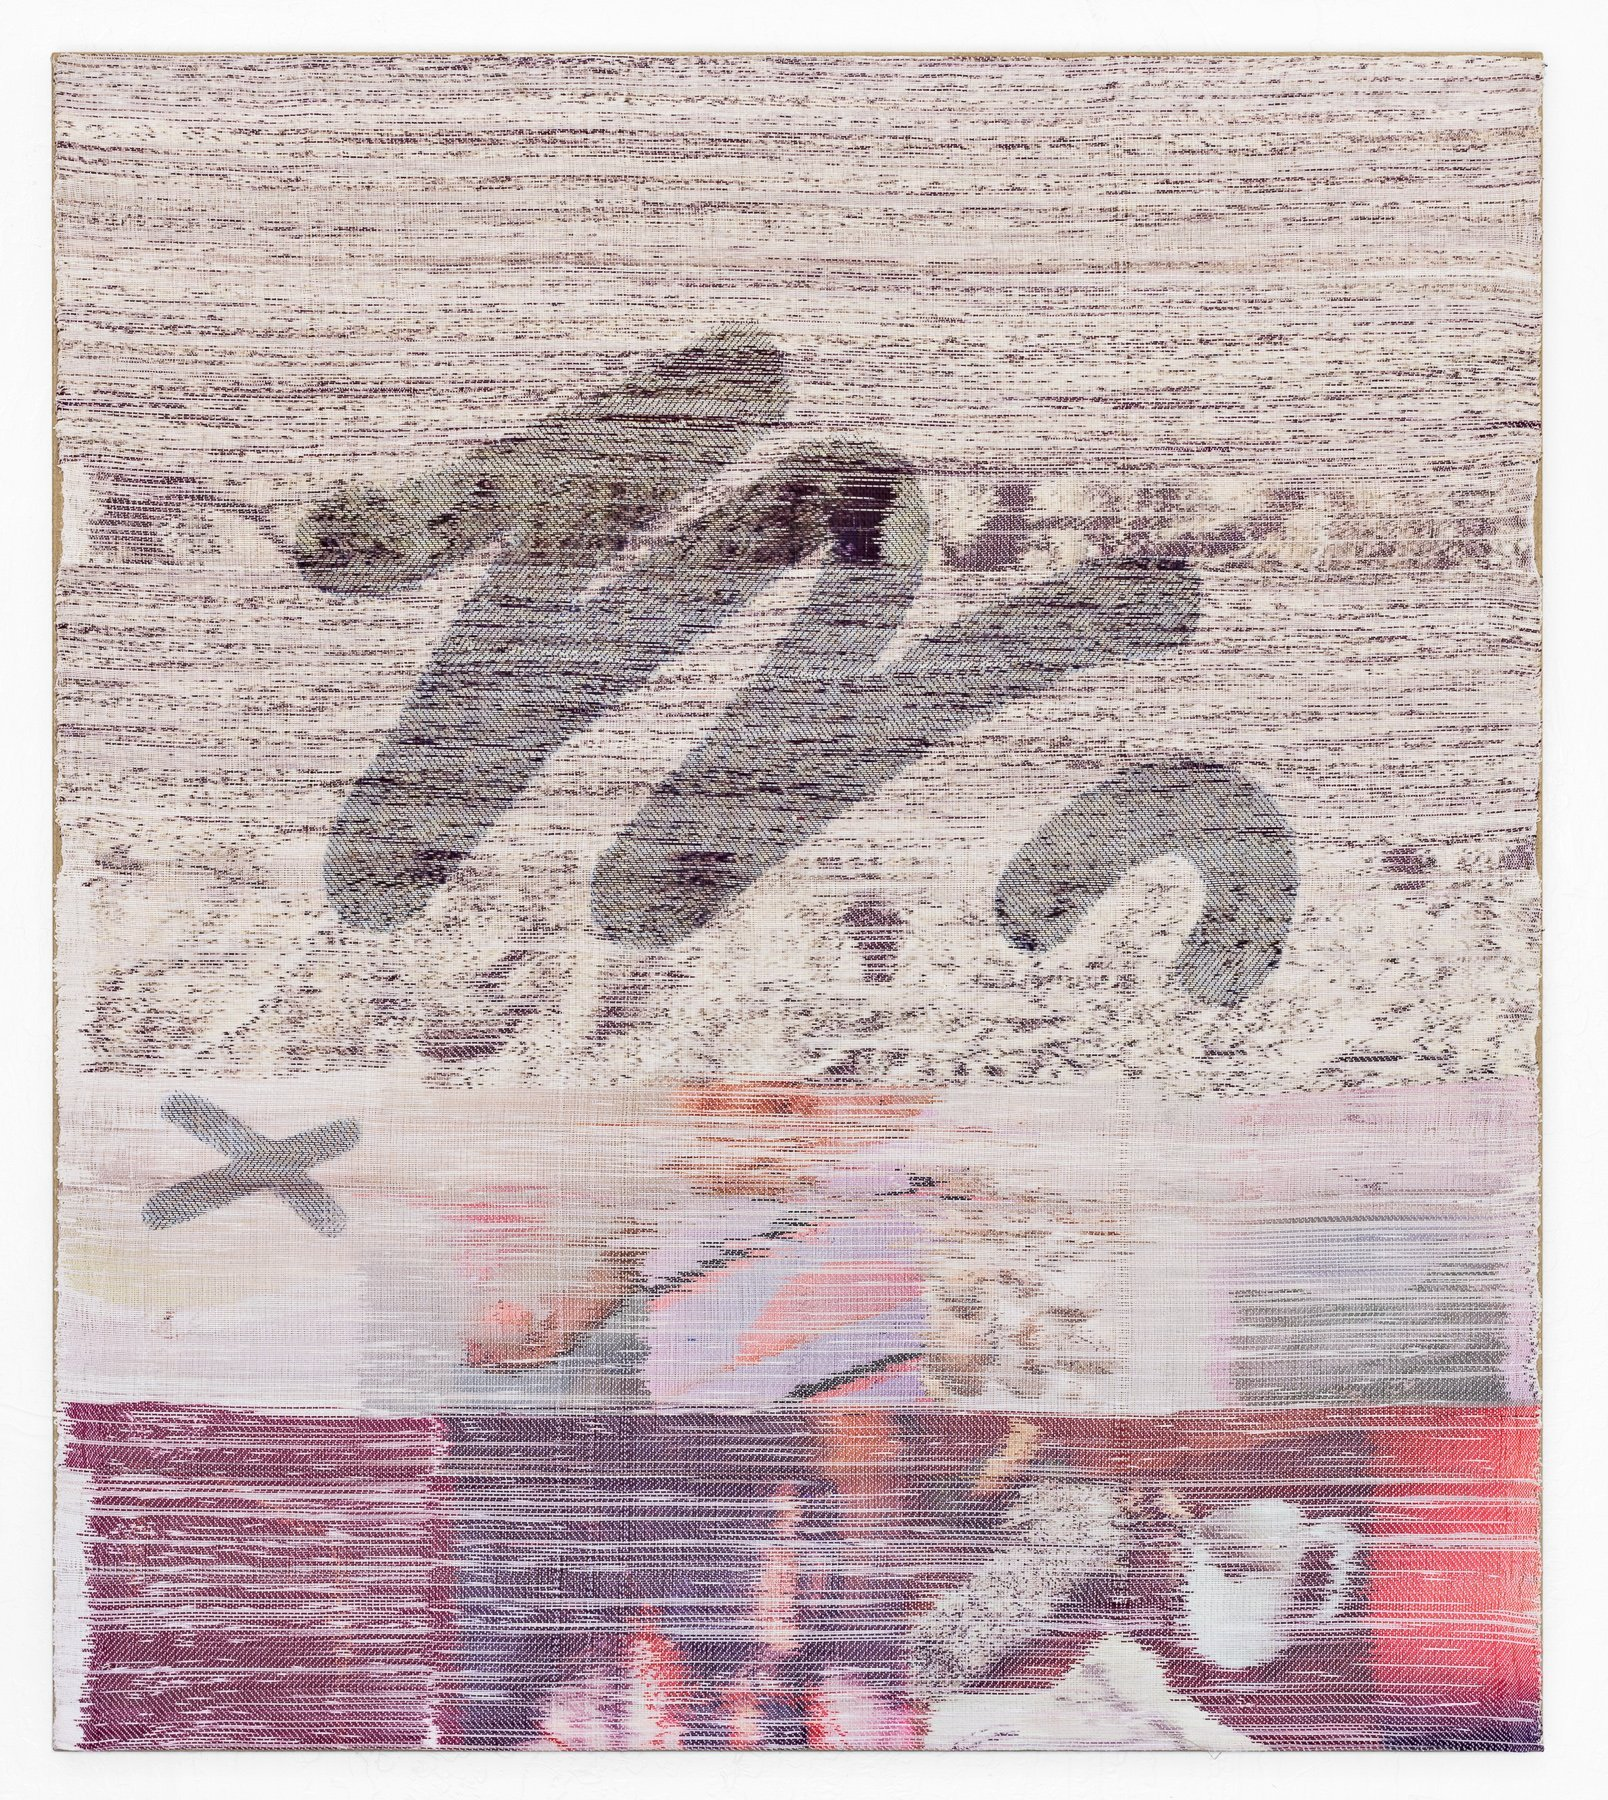 Margo Wolowiec  Rounding Up, 2014Handwoven polyester, cotton, linen dye, sublimation ink, fabric dye 52 x 46 inches